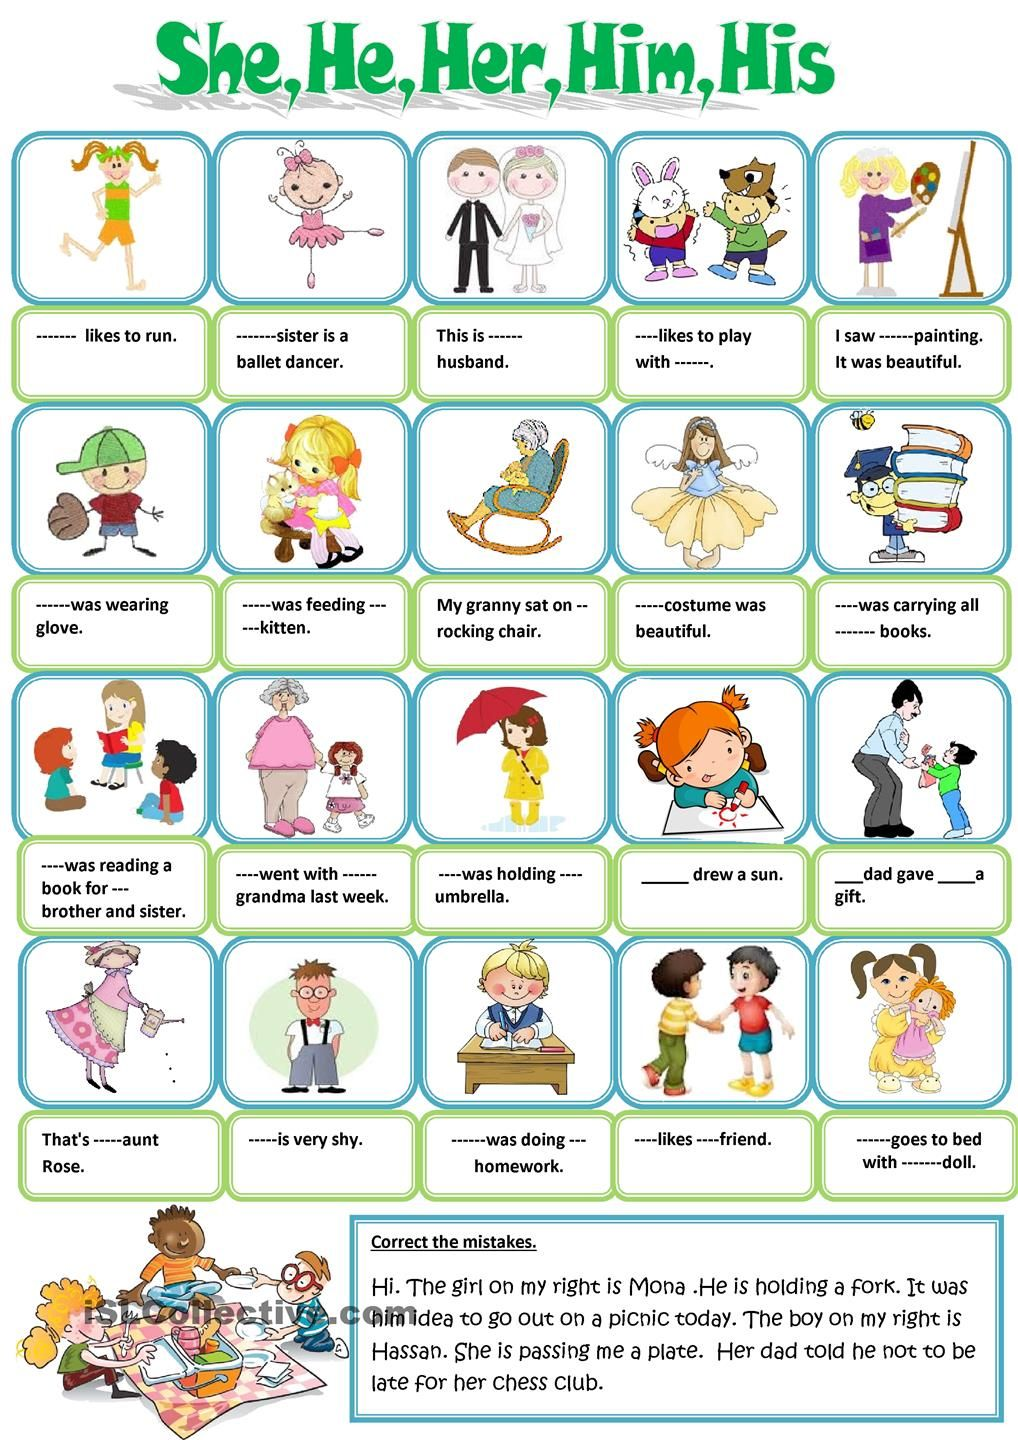 Walking through the jungle worksheet free esl printable worksheets - Free Esl Efl Printable Worksheets And Handouts